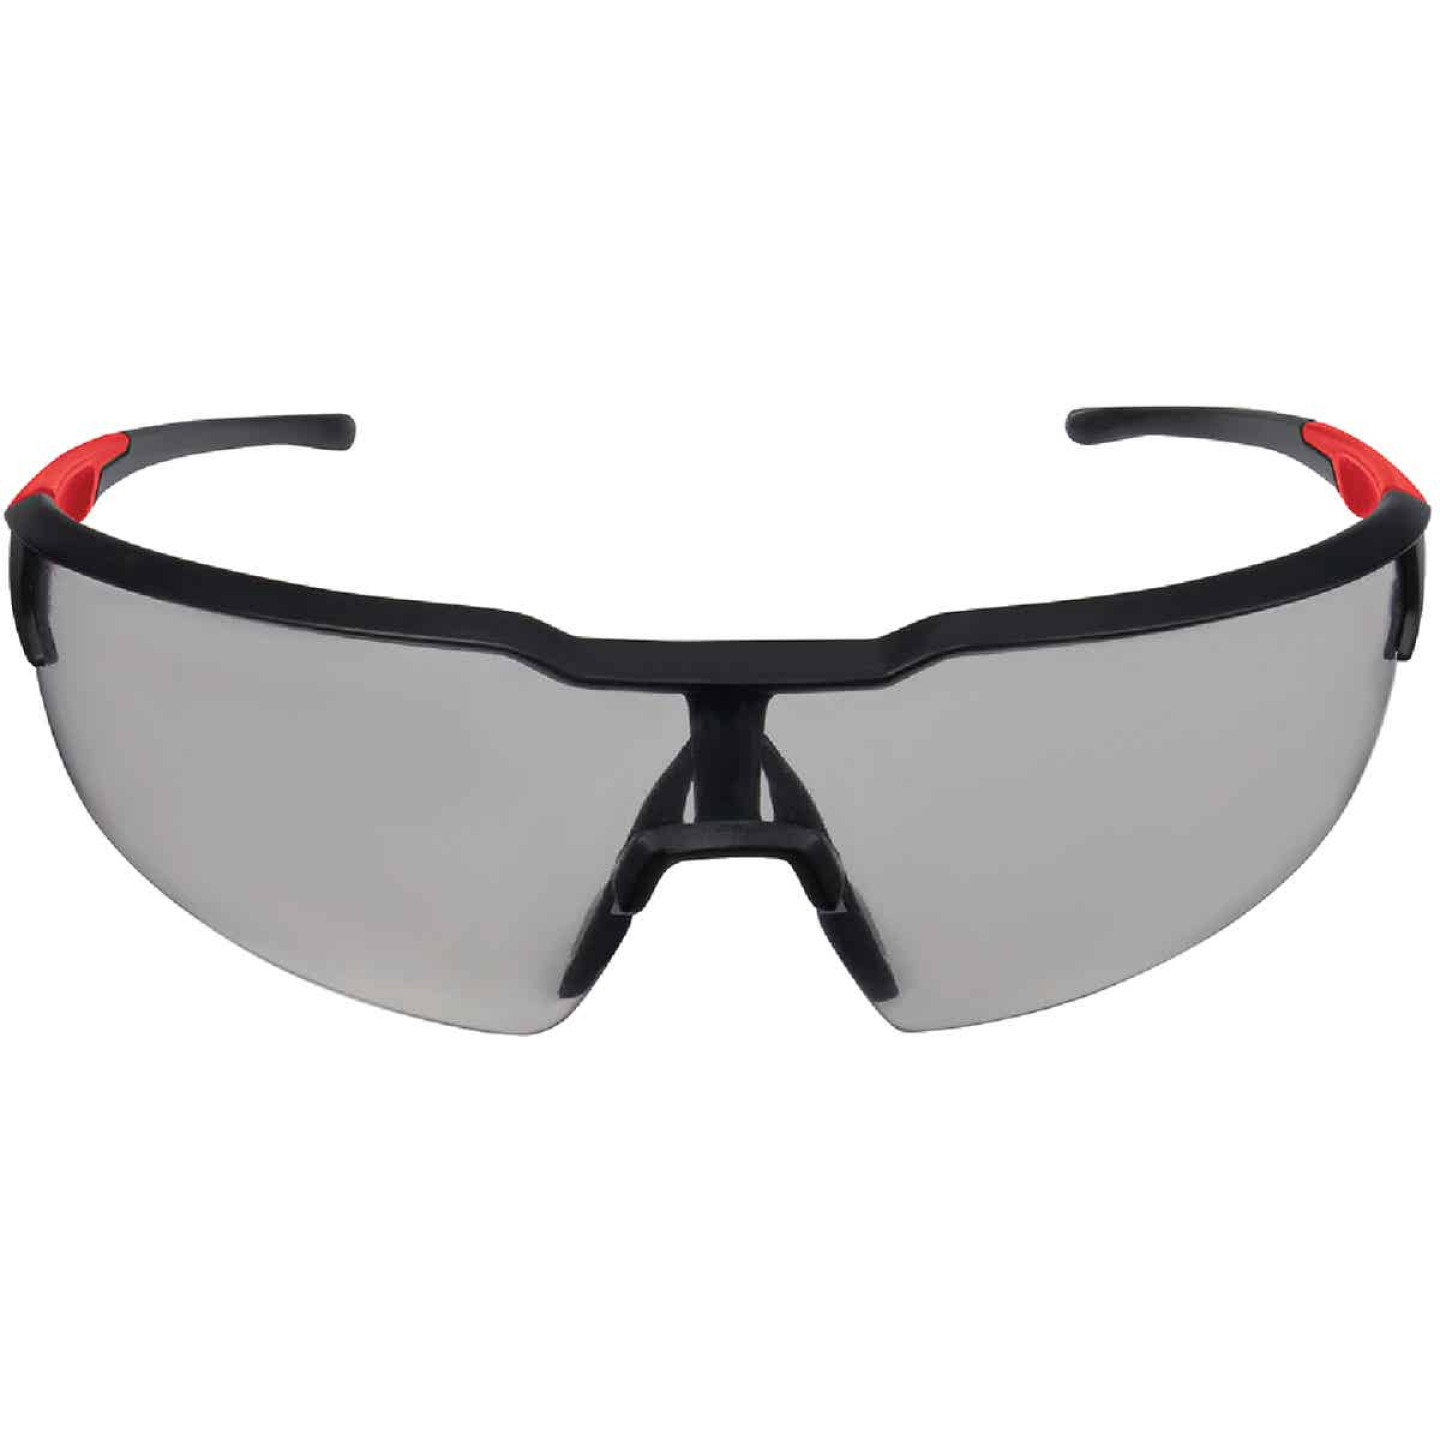 Milwaukee Red & Black Frame Safety Glasses with Gray Anti-Scratch Lenses Image 4